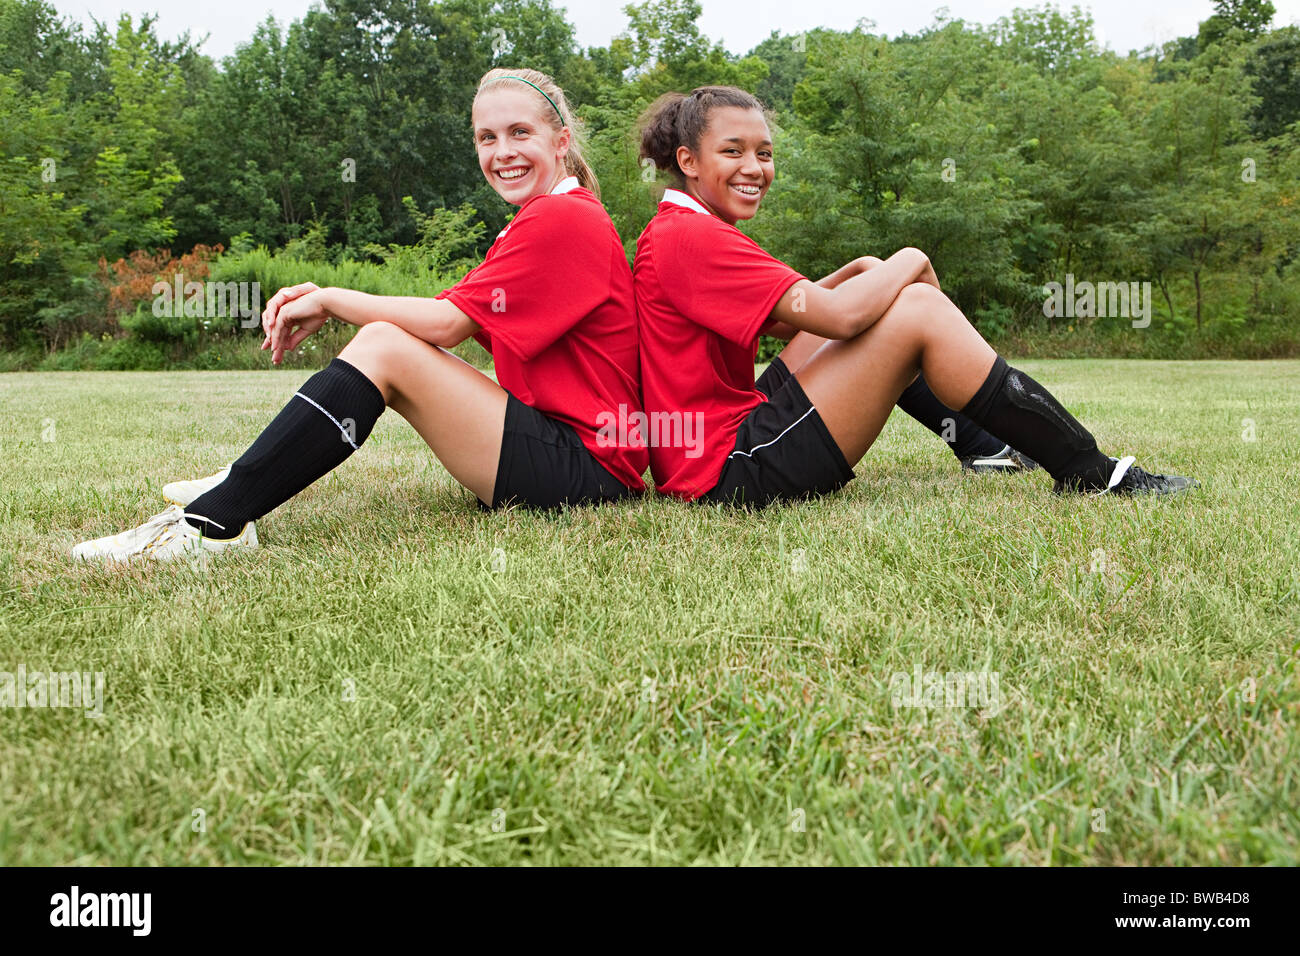 Girl soccer players back to back - Stock Image